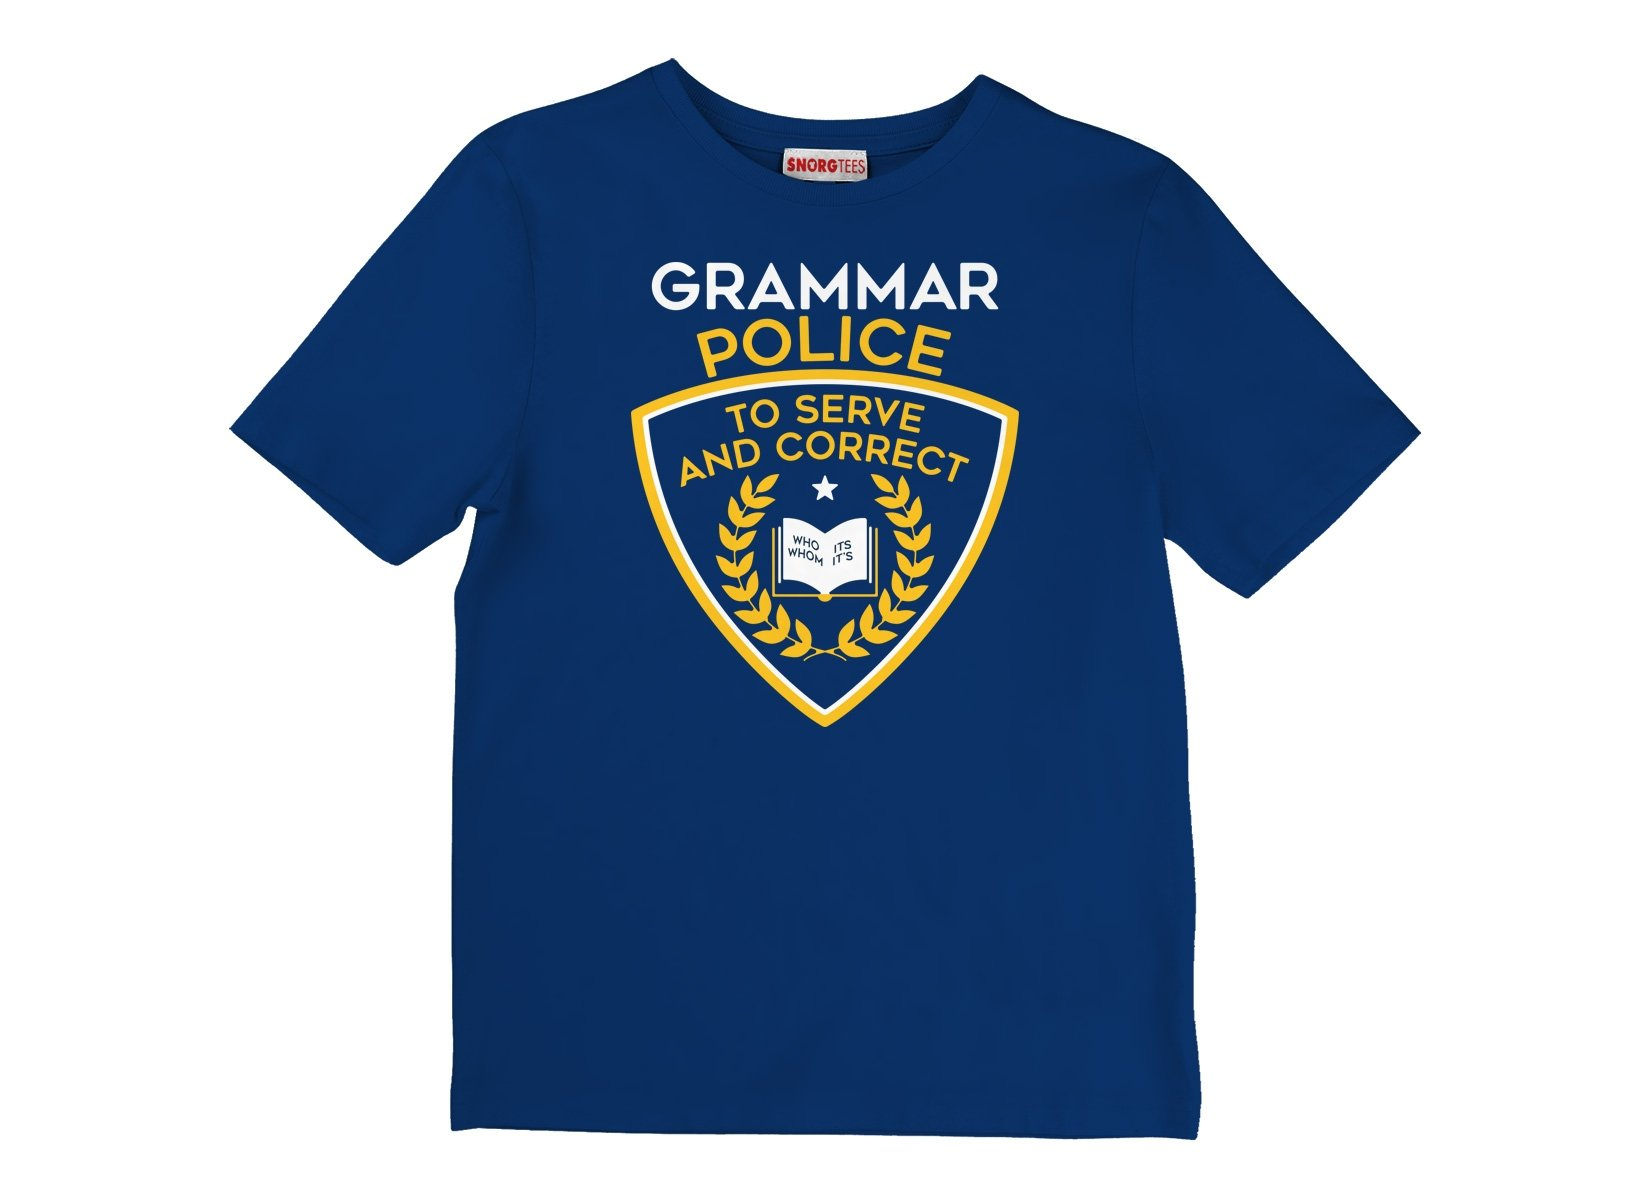 Grammar Police on Kids T-Shirt